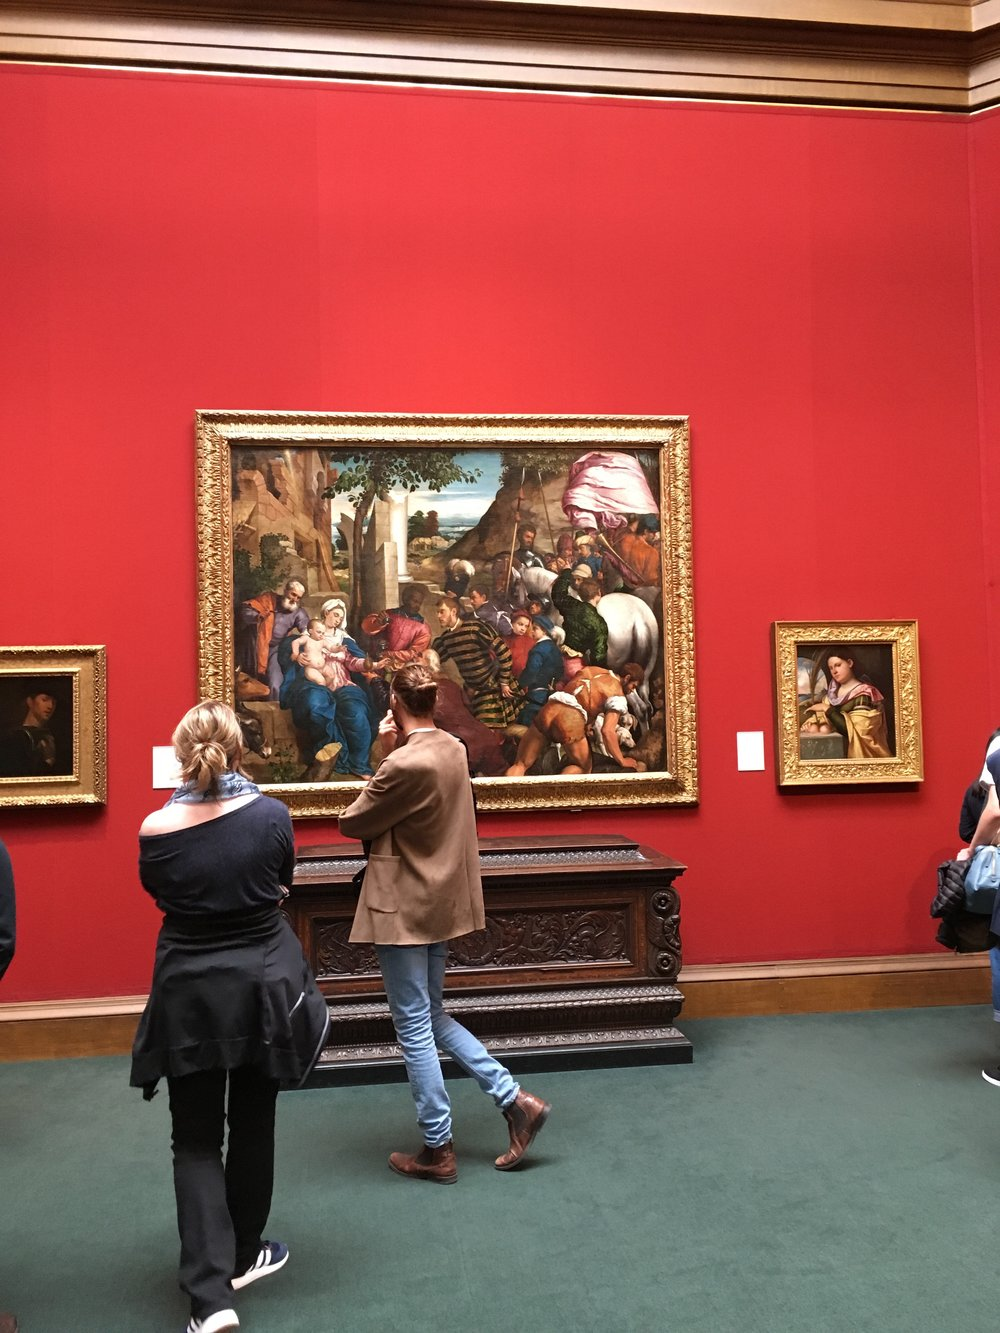 National Gallery of Scotland